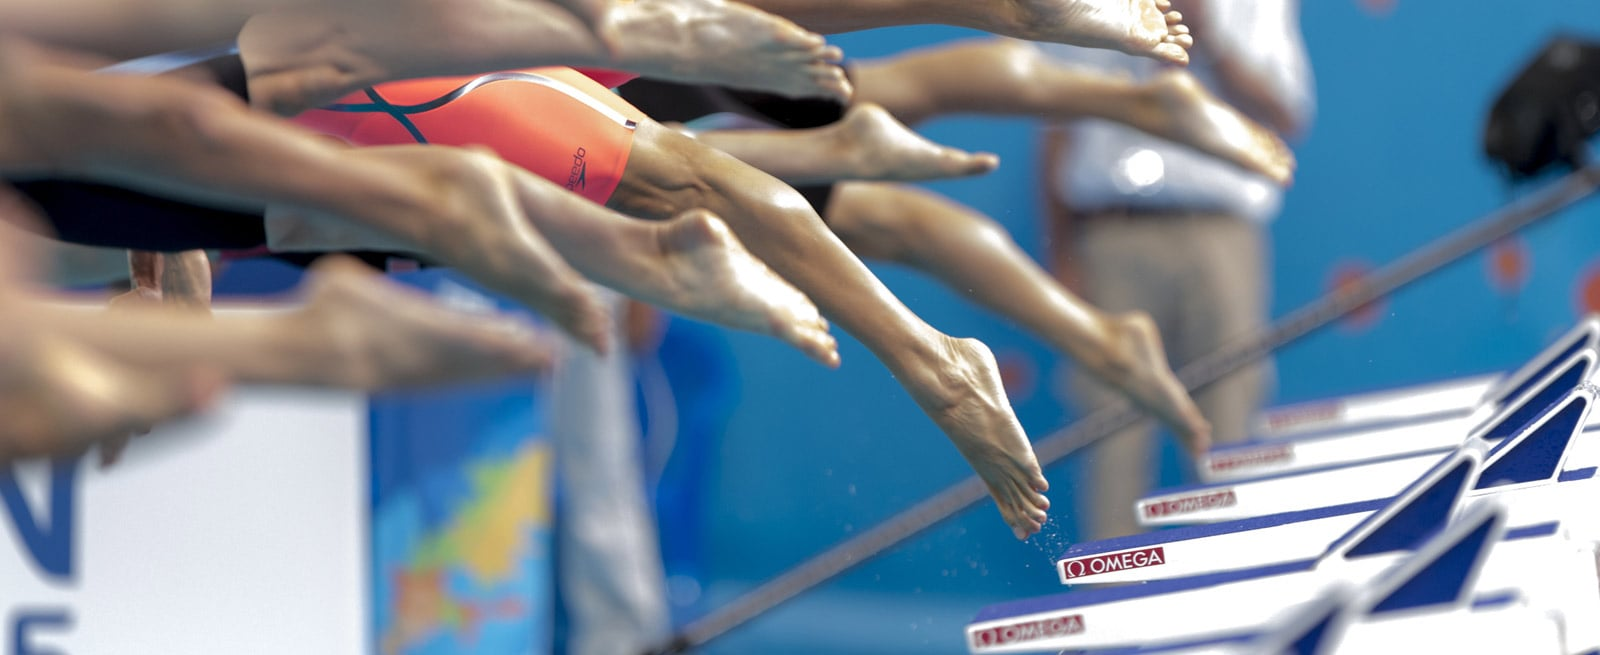 Photography of the feet of plunging swimmers